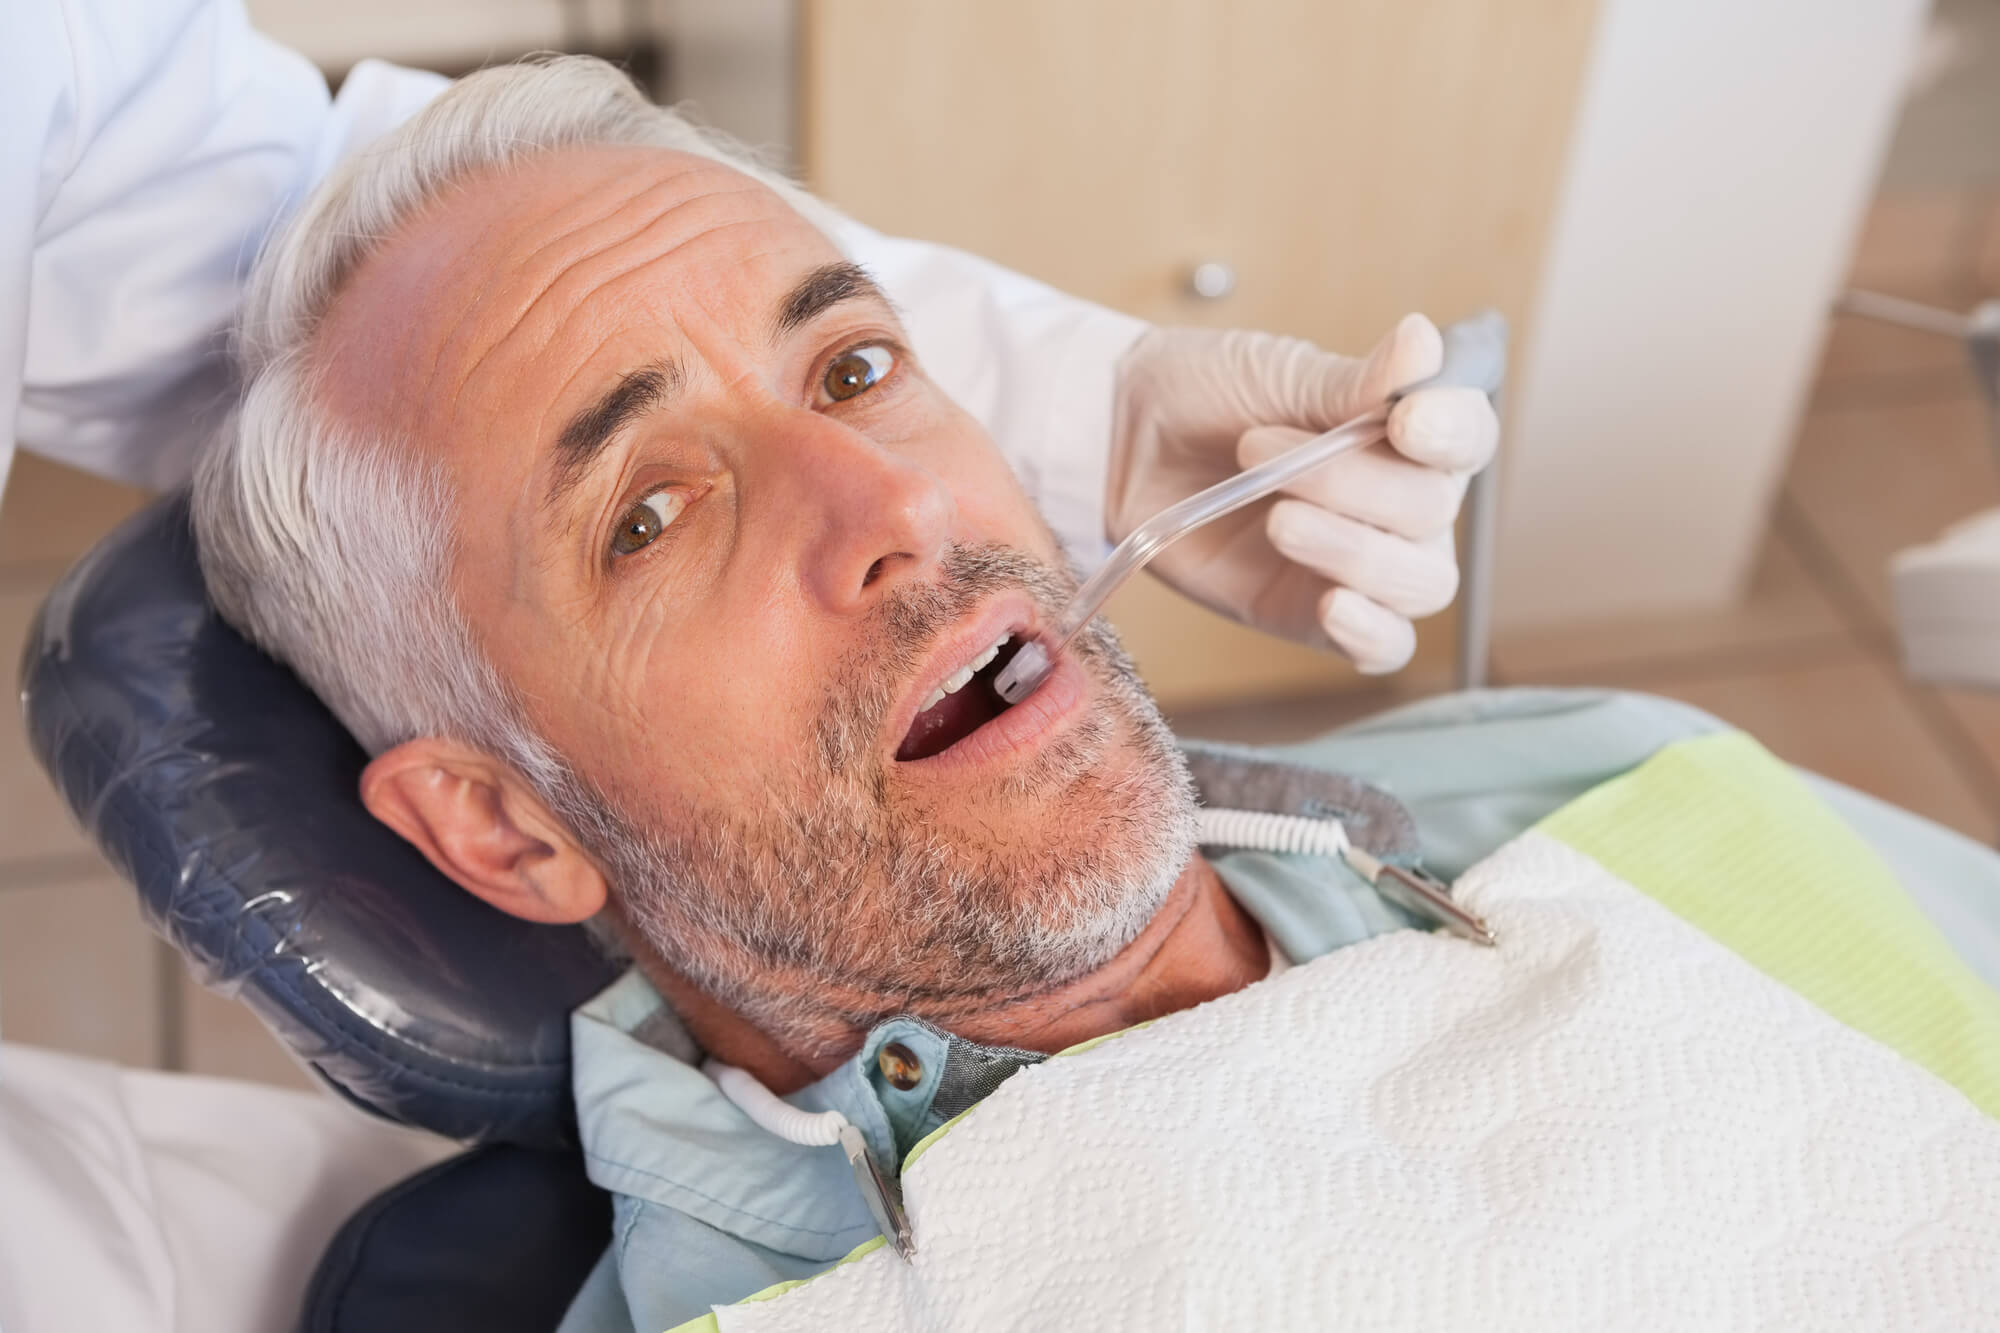 who offers wisdom teeth aventura?